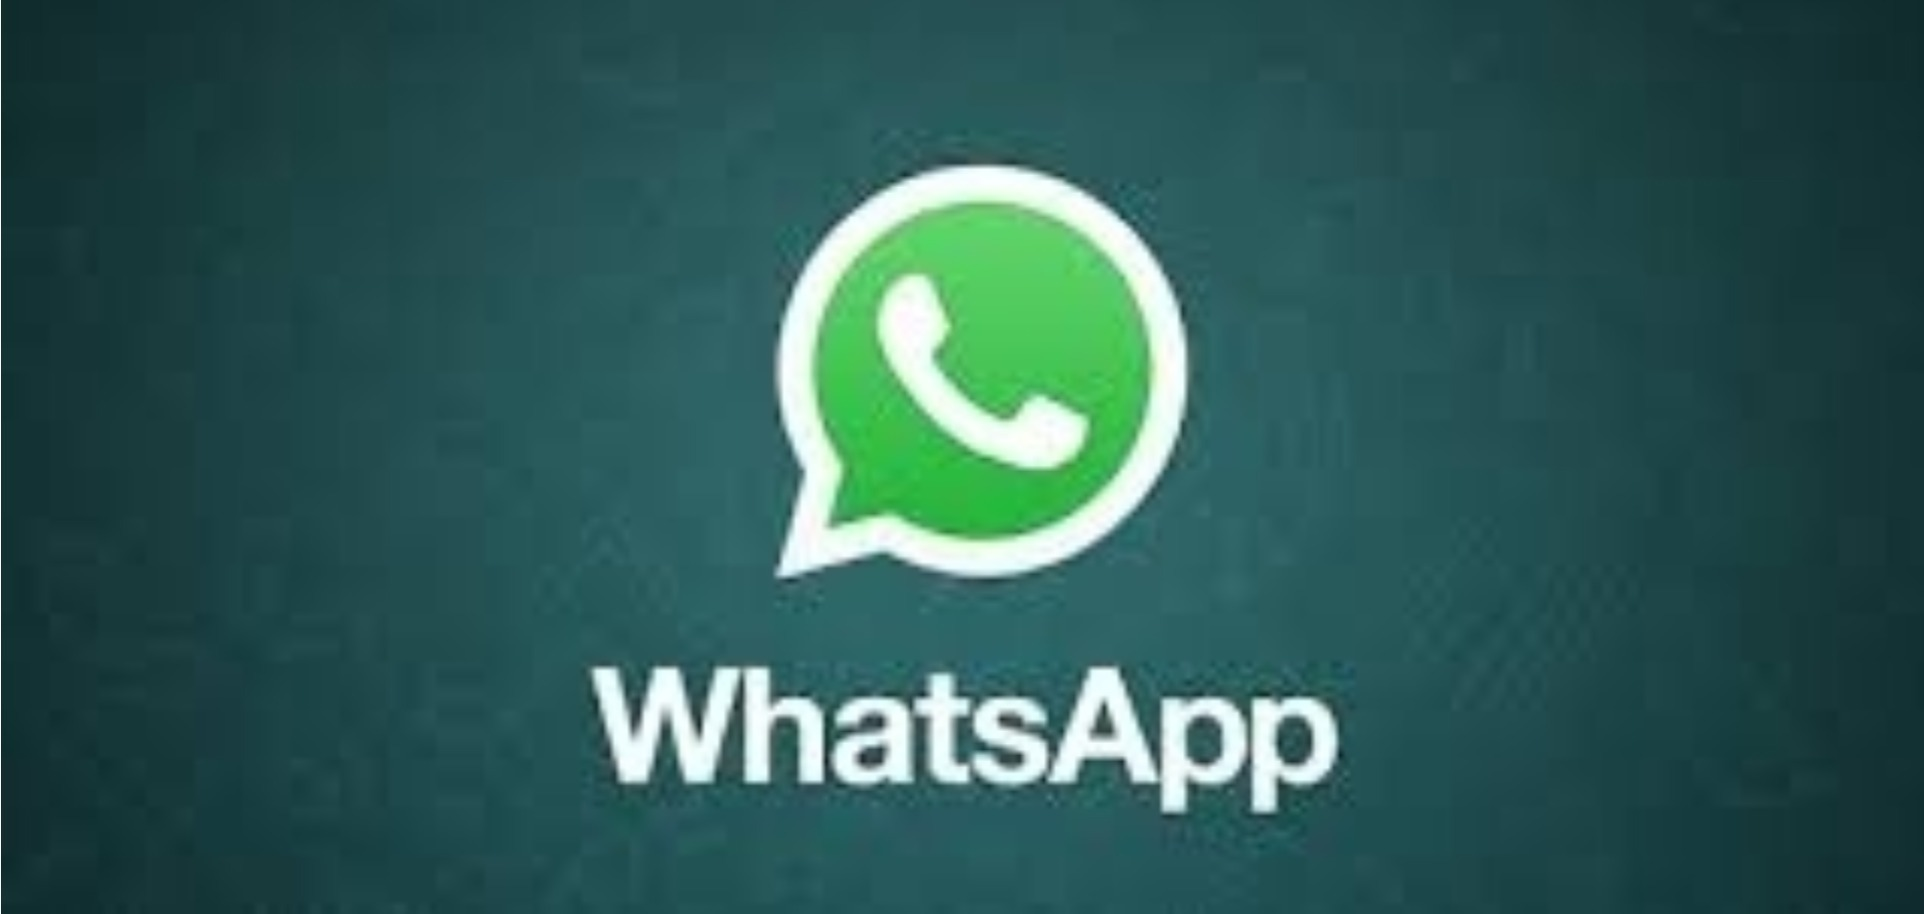 WhatsApp Cannot Evade Responsibilities, says The Ministry of Electronics and IT